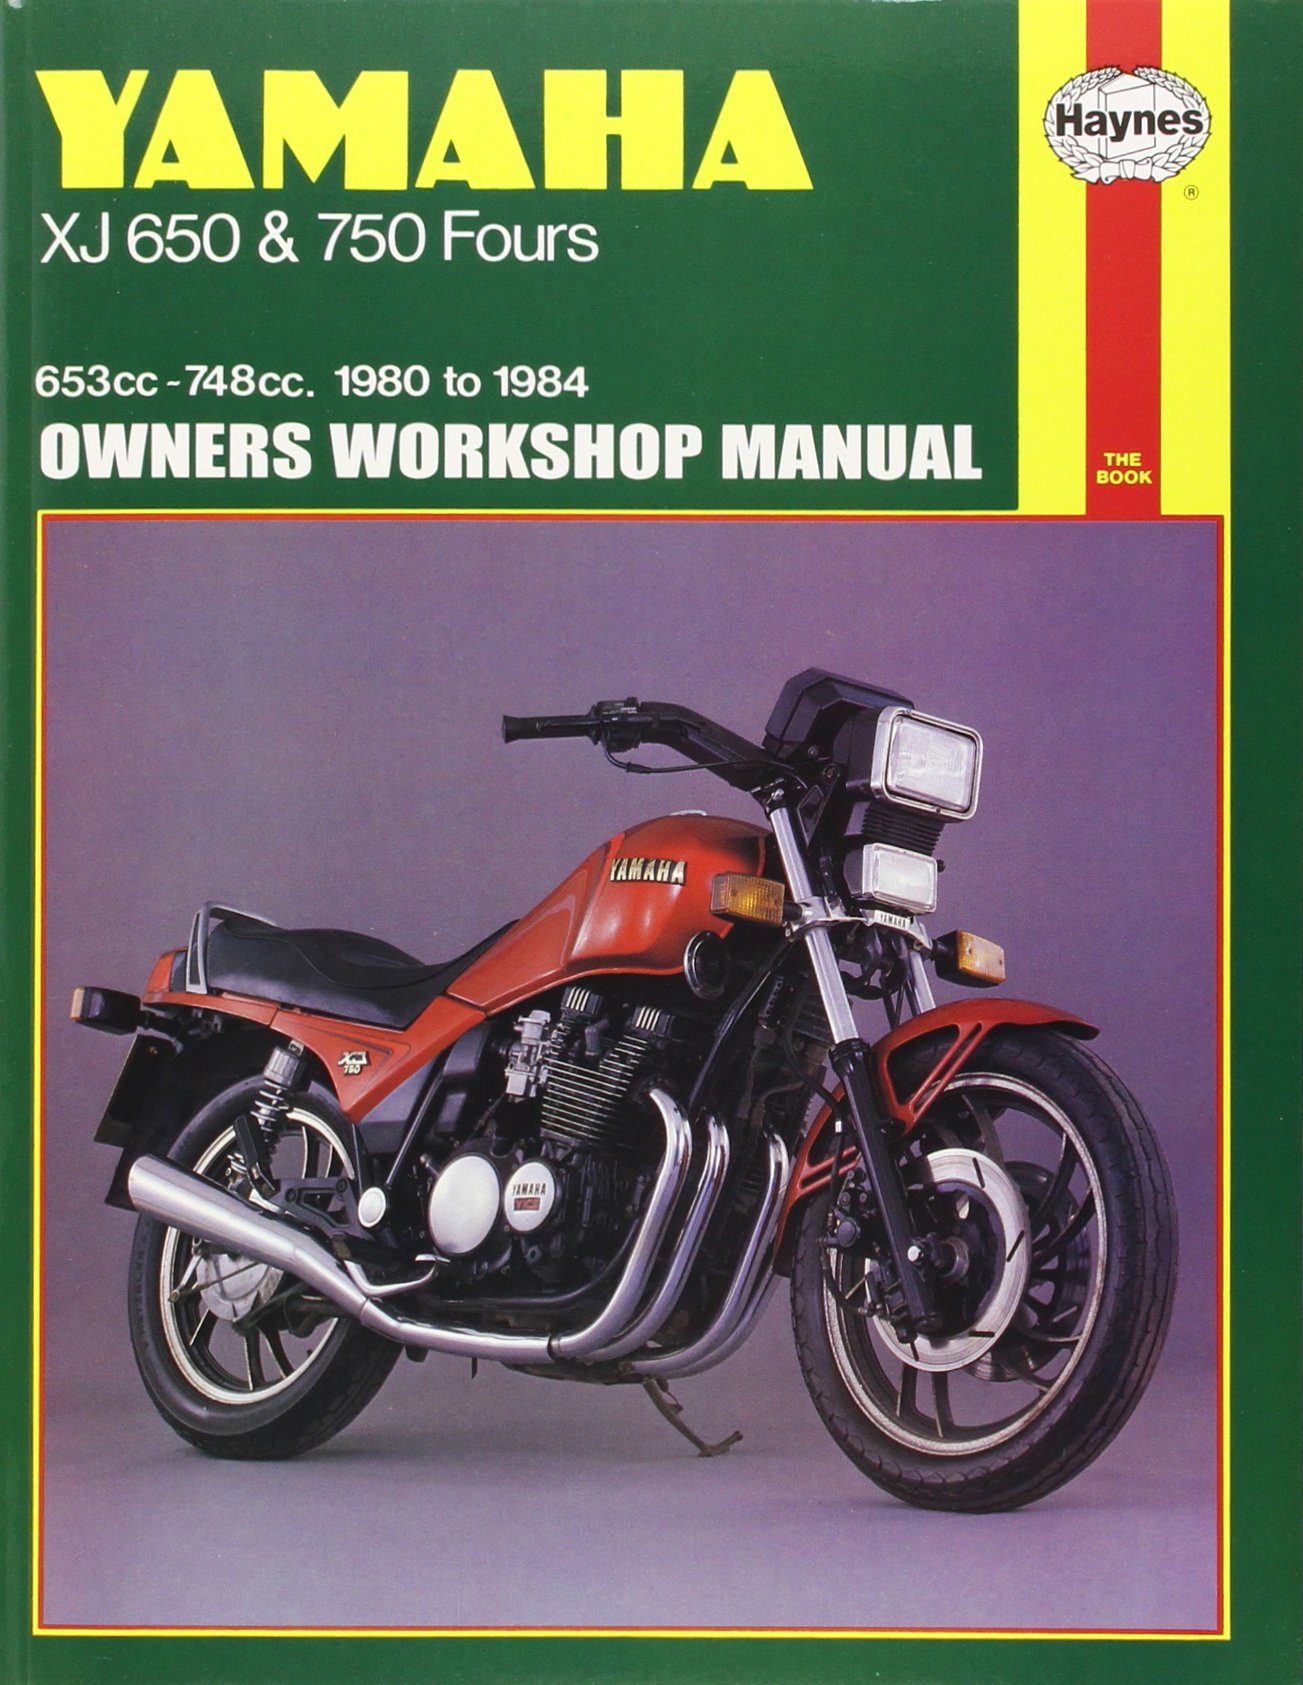 Yamaha XJ 650 and XJ 750 Fours Owners Workshop Manual, No. M738: '80-'84:  John Haynes: 9781850103530: Books - Amazon.ca